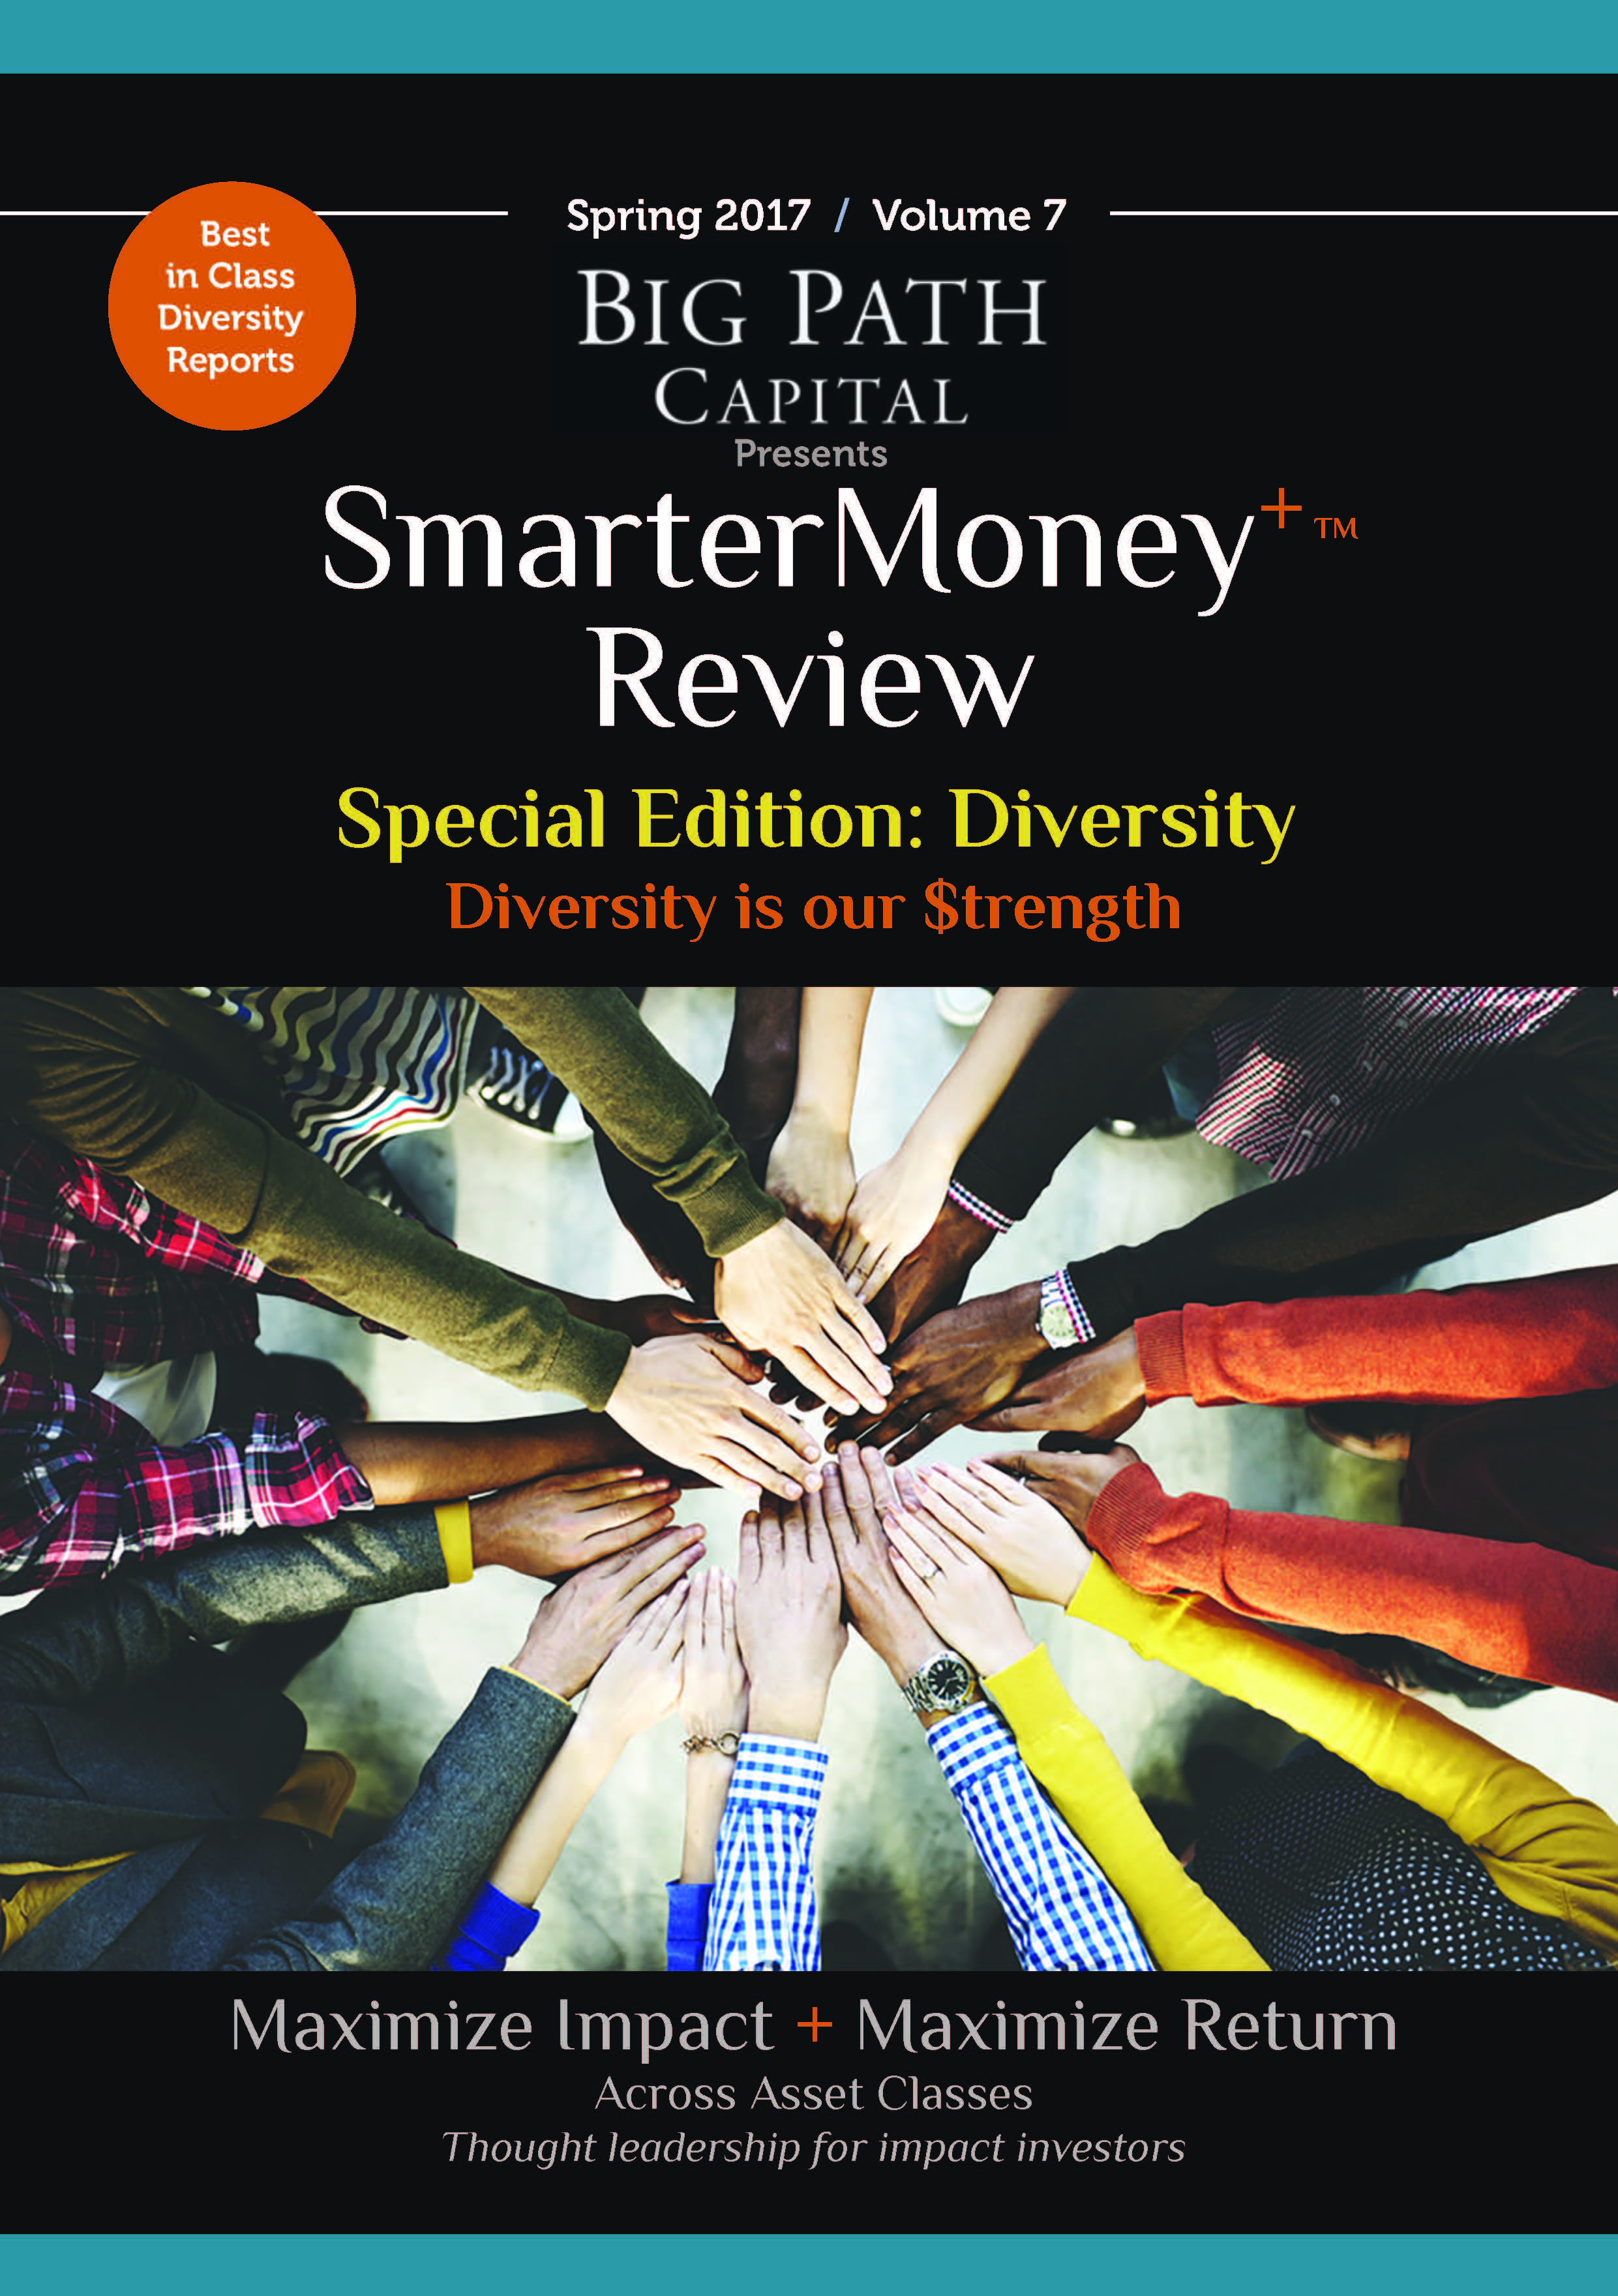 Big Path Capital Education - Smarter Money Review - Diversity